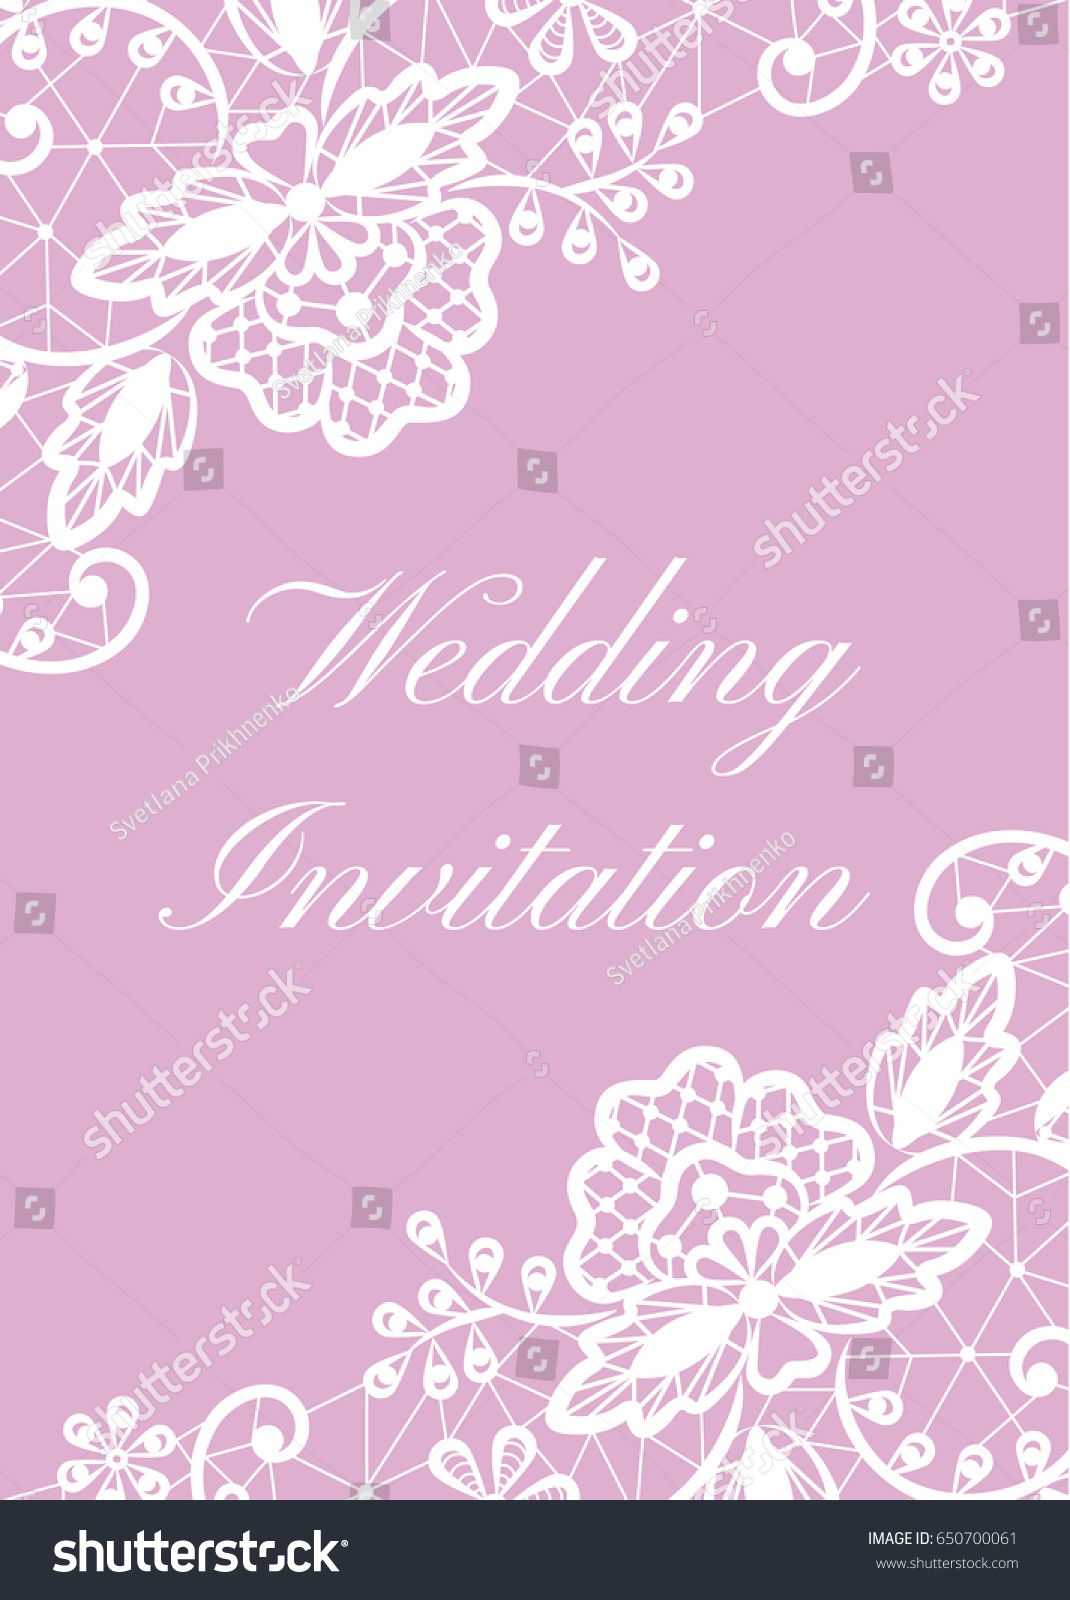 Wedding Card With White Lace Border On Pink Background